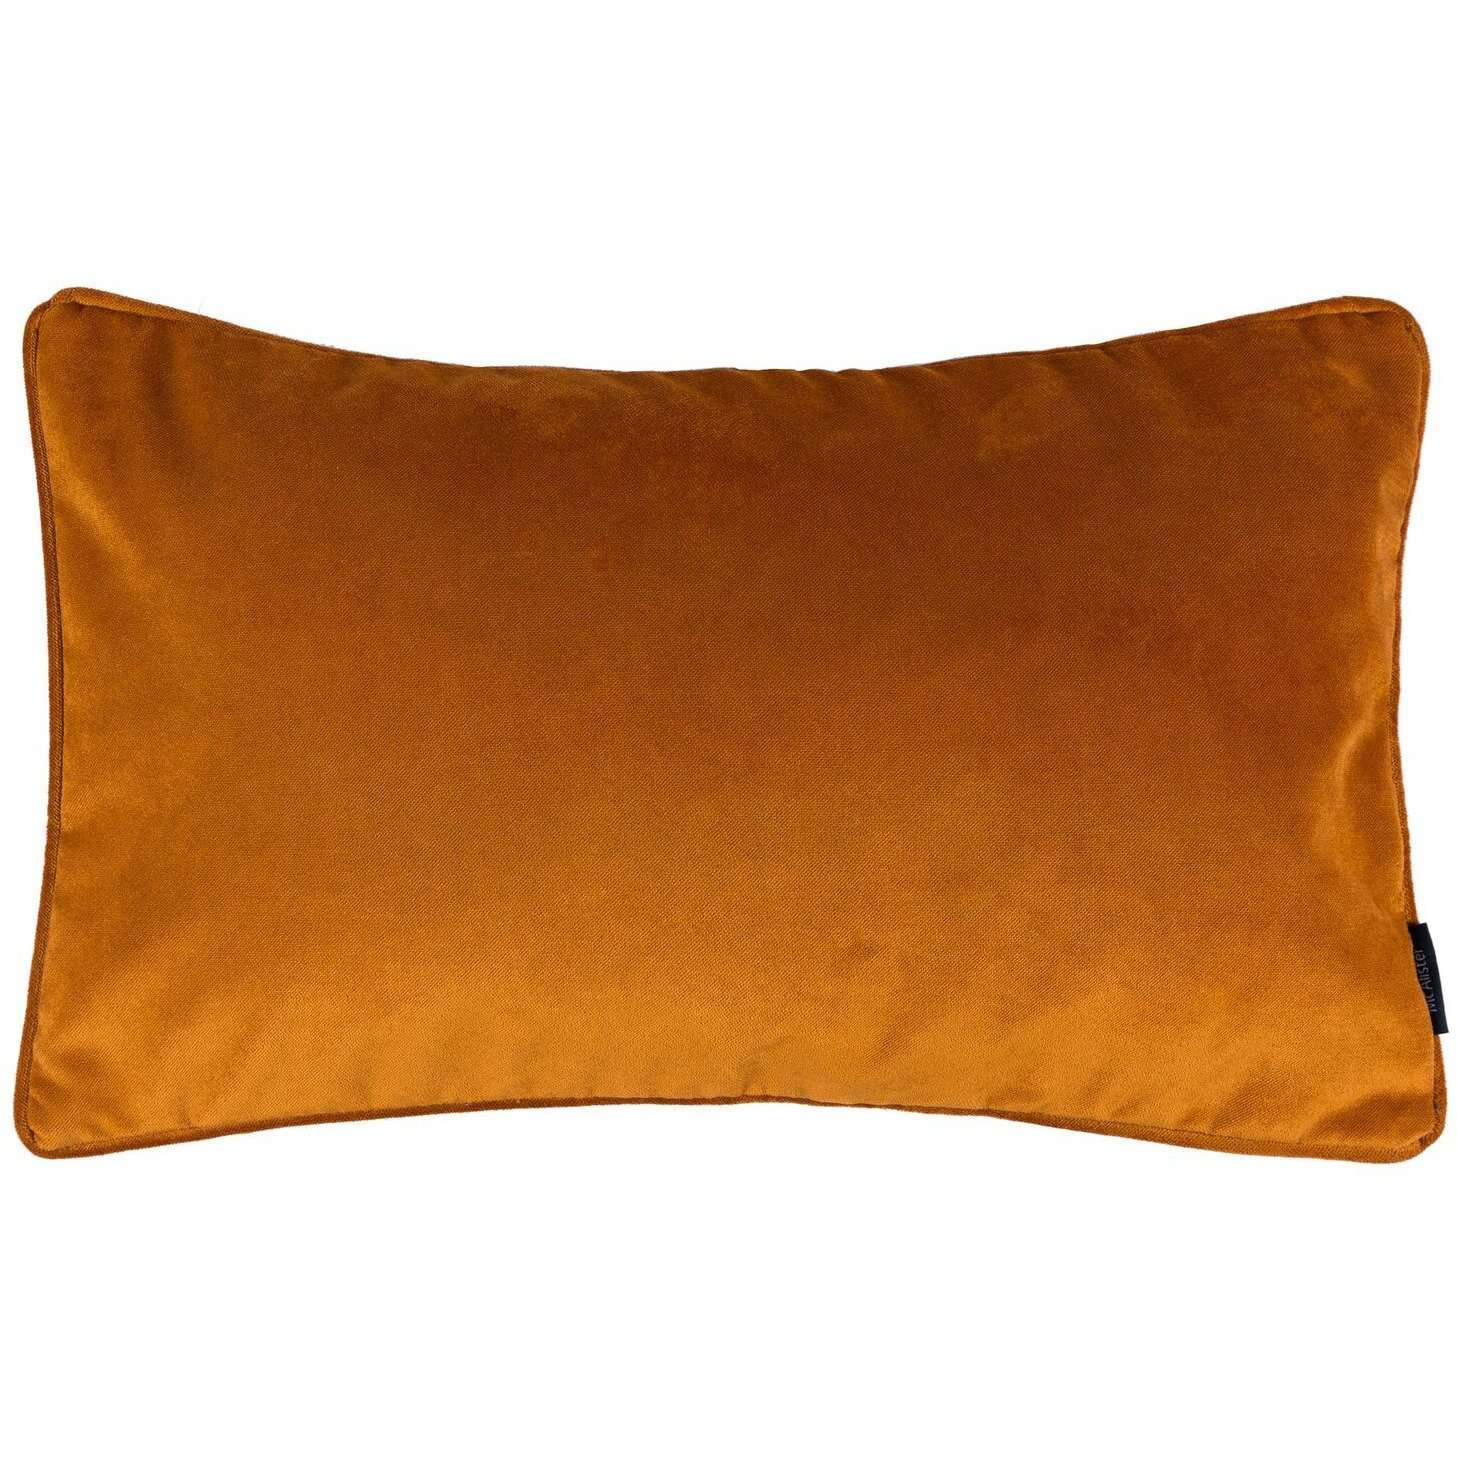 McAlister Textiles Matt Burnt Orange Velvet Cushion Cushions and Covers Cover Only 50cm x 30cm